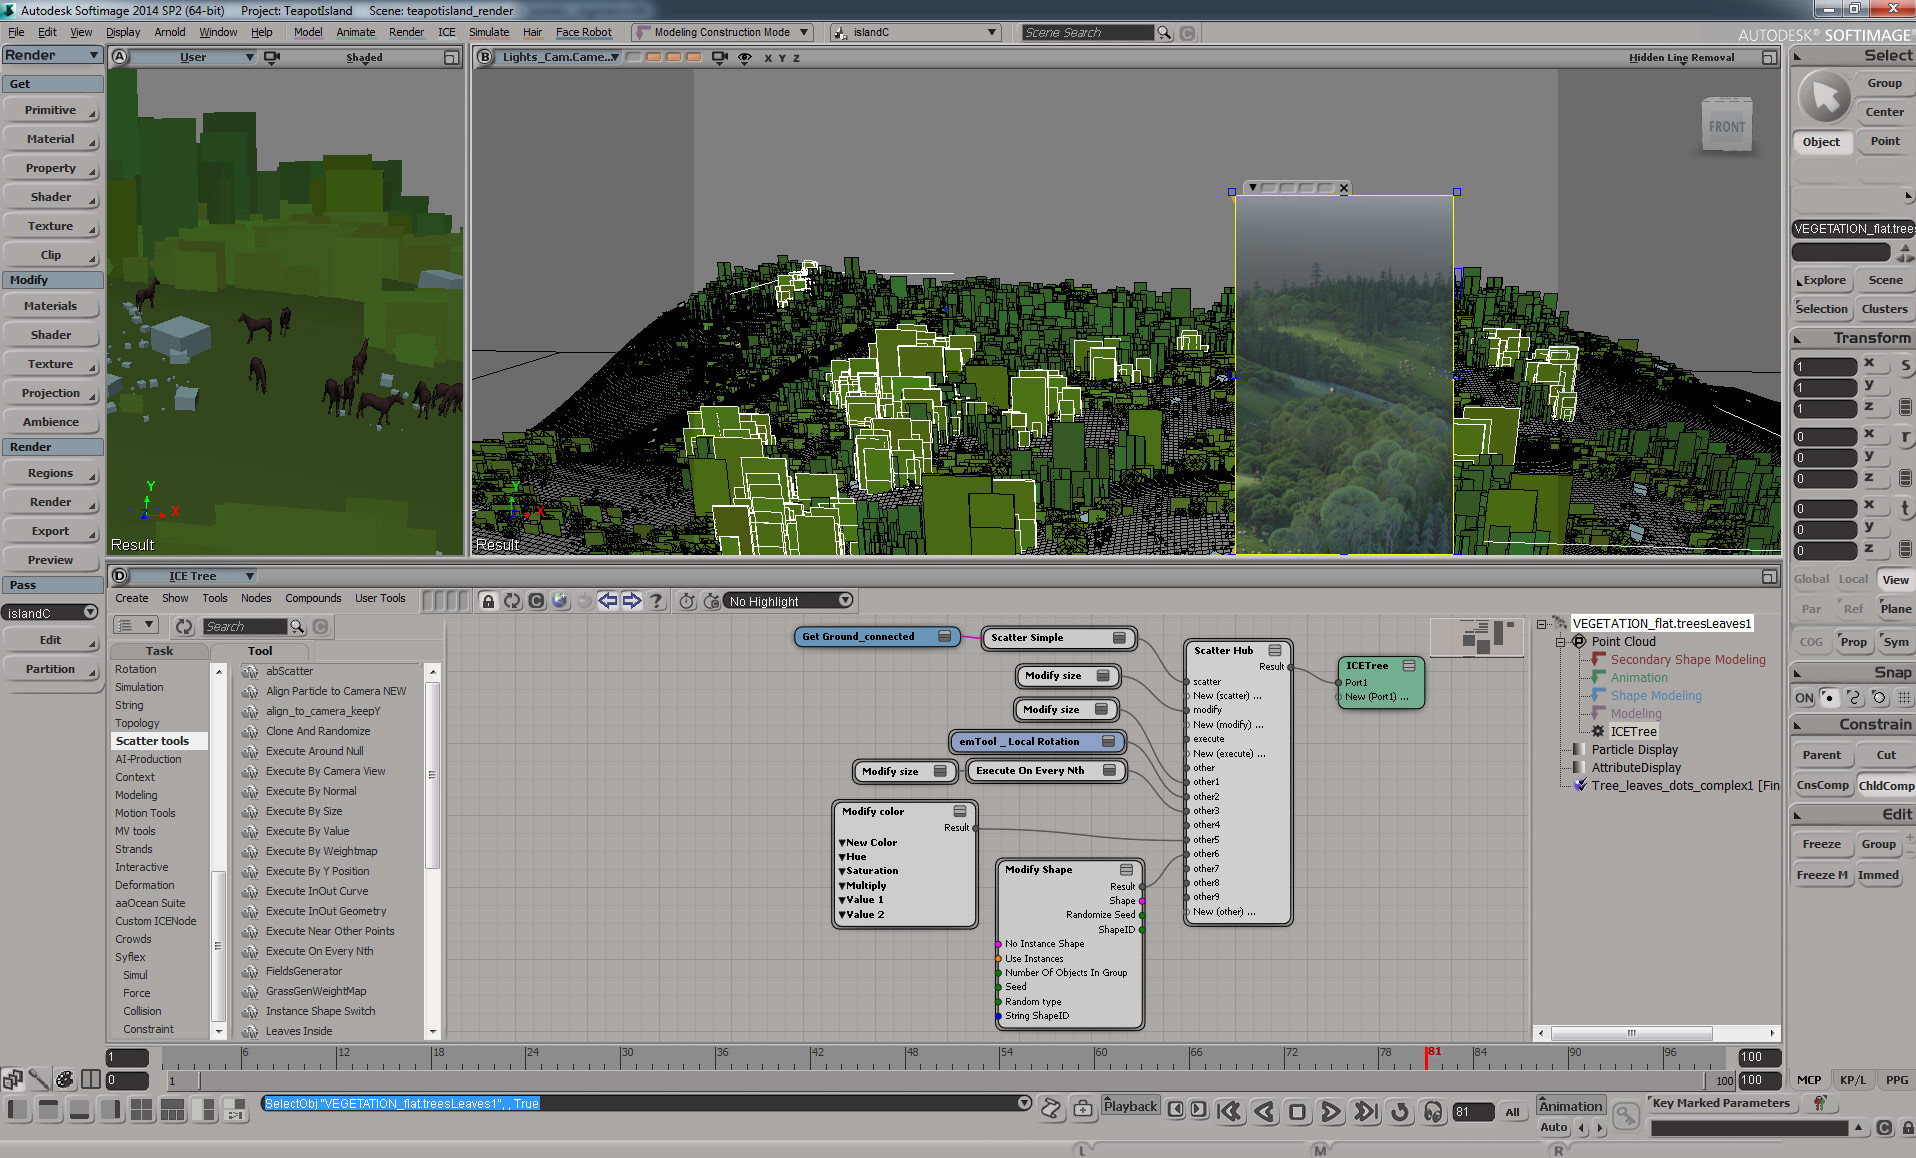 most of the work done in Softimage